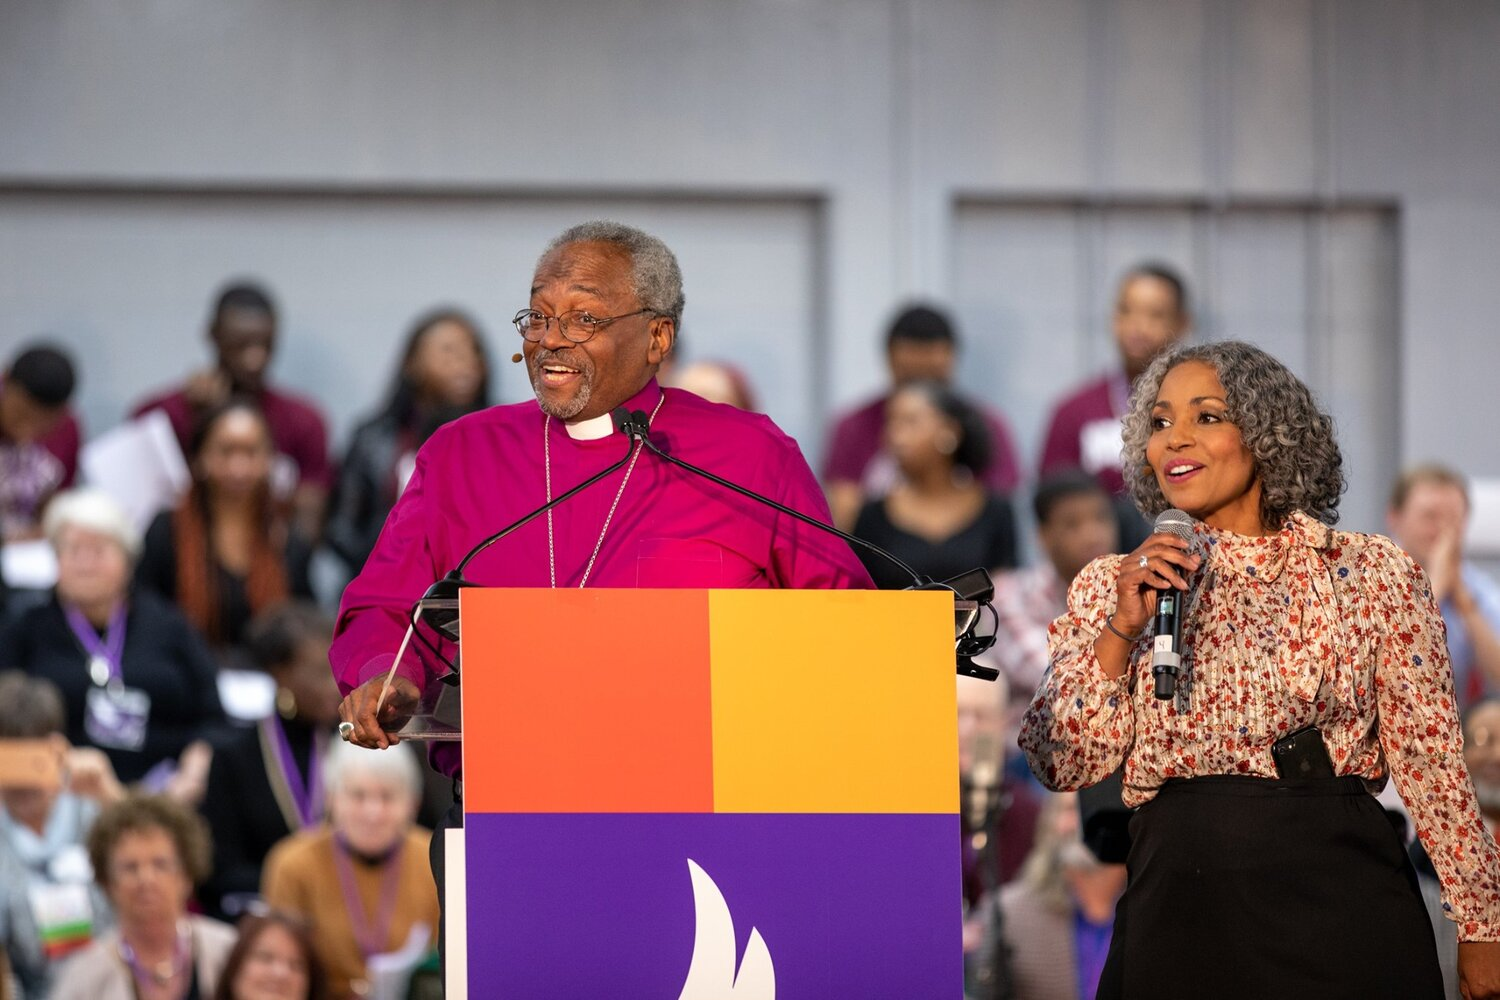 Presiding Bishop Michael Curry had the crowd rapt at attention throughout his sermon, one of many highlights of an engaging evening..